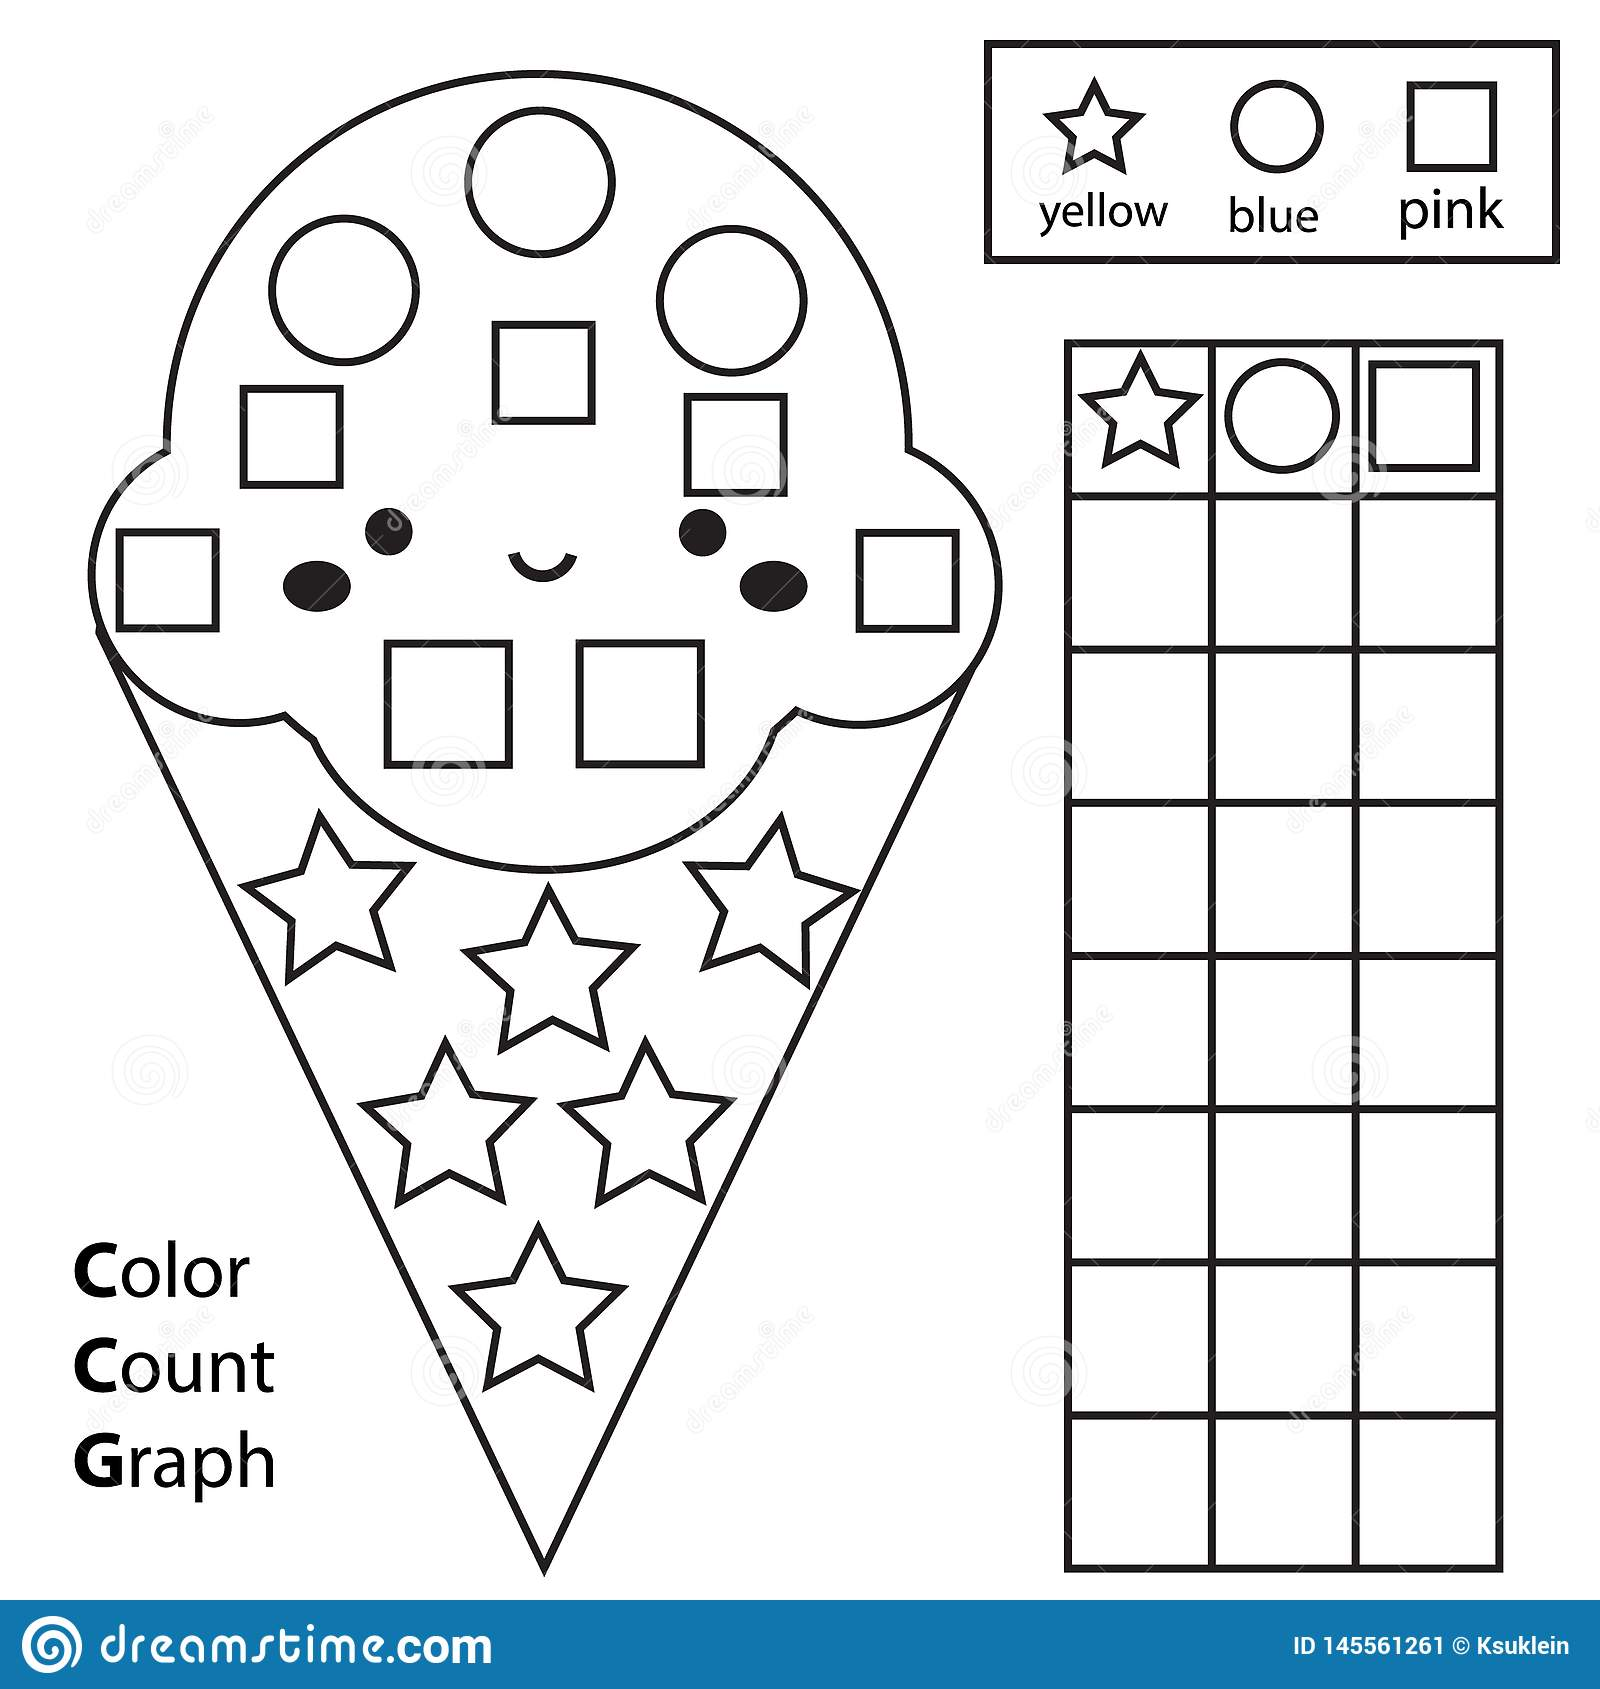 Color Count And Graph Educational Children Game Color Ice Cream And Counting Shapes